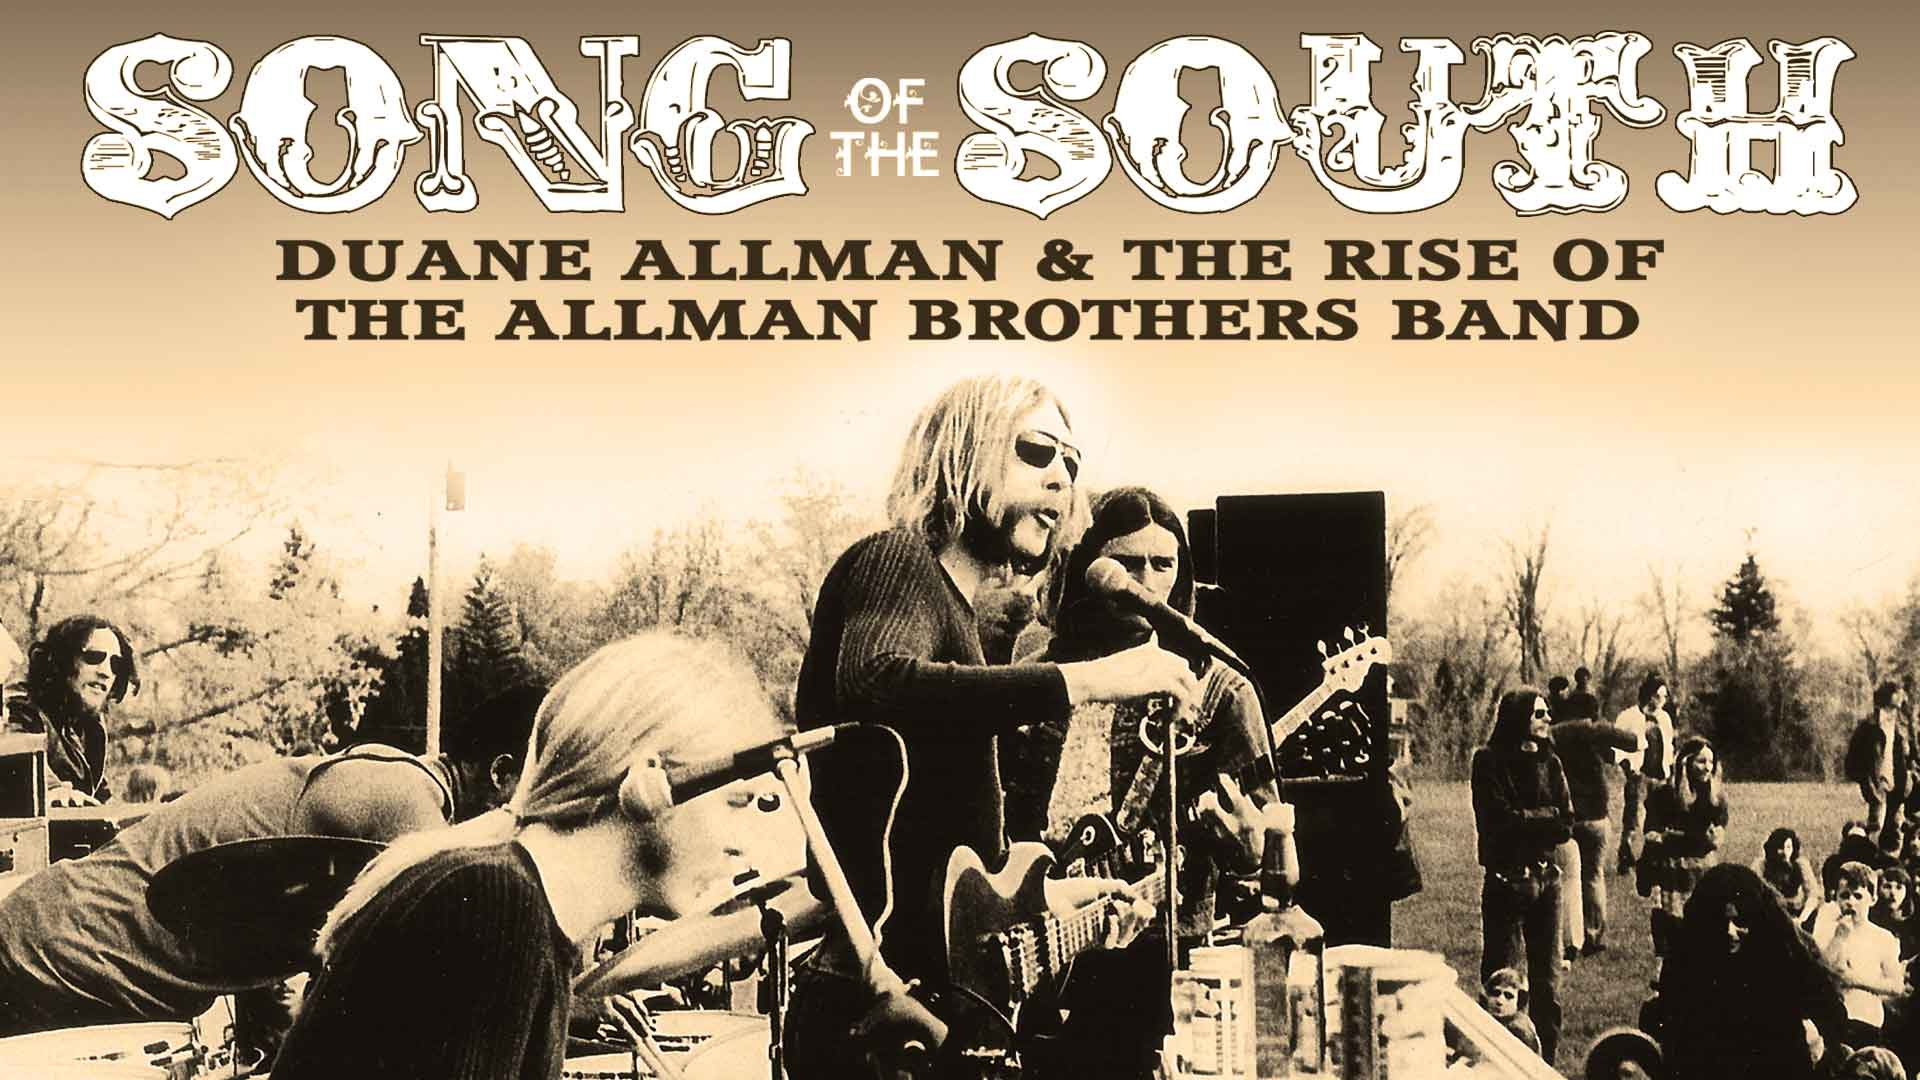 Duane Allman: Song of the South